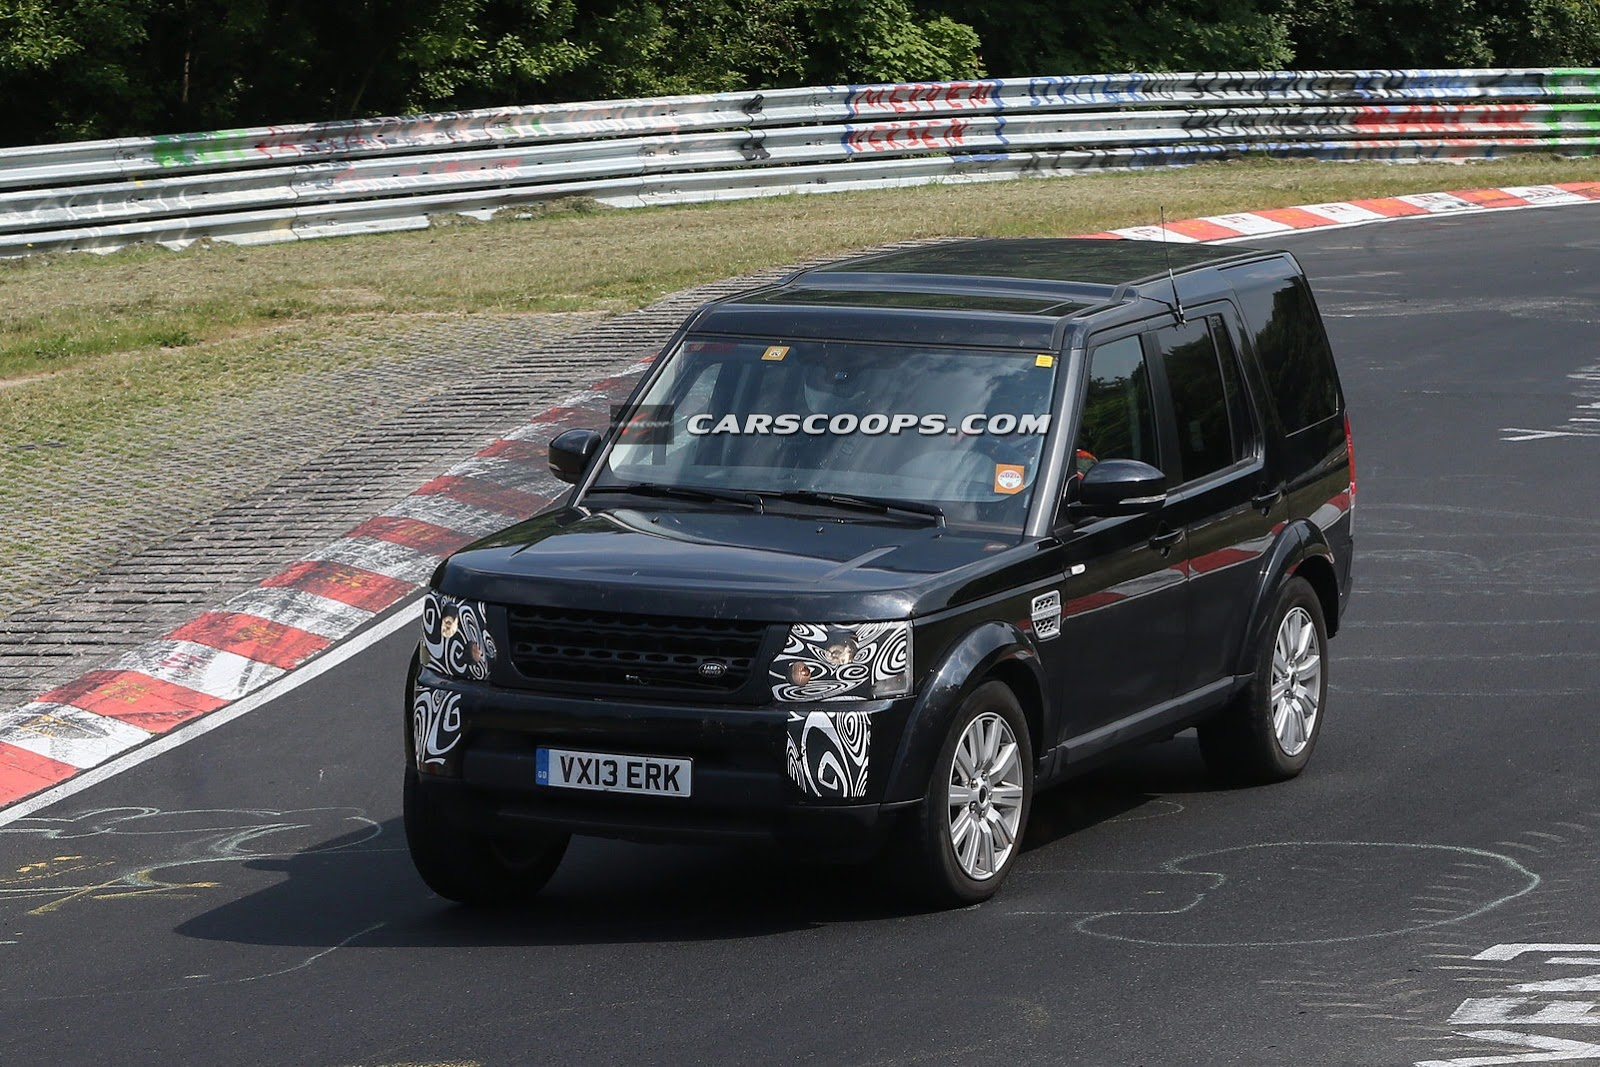 http://www.motoroids.com/wp-content/uploads/2013/07/2014-Land-Rover-Discovery-LR4-pics-7.jpg